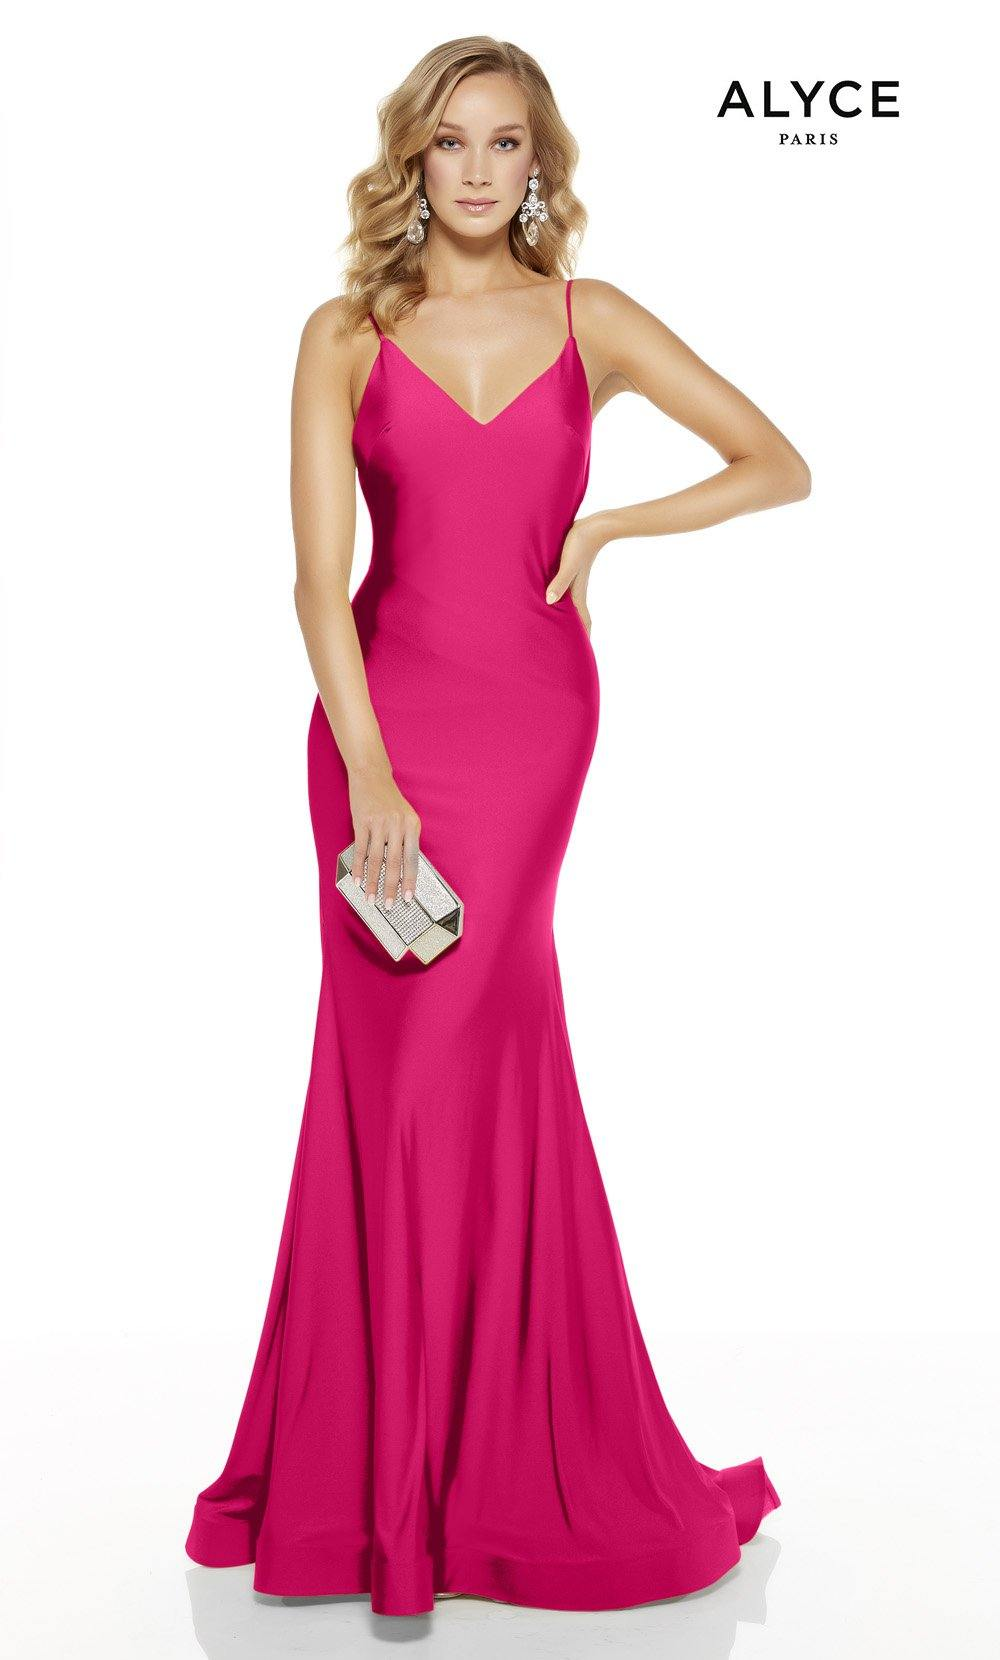 Barbie Pink mermaid prom dress with a v-neckline